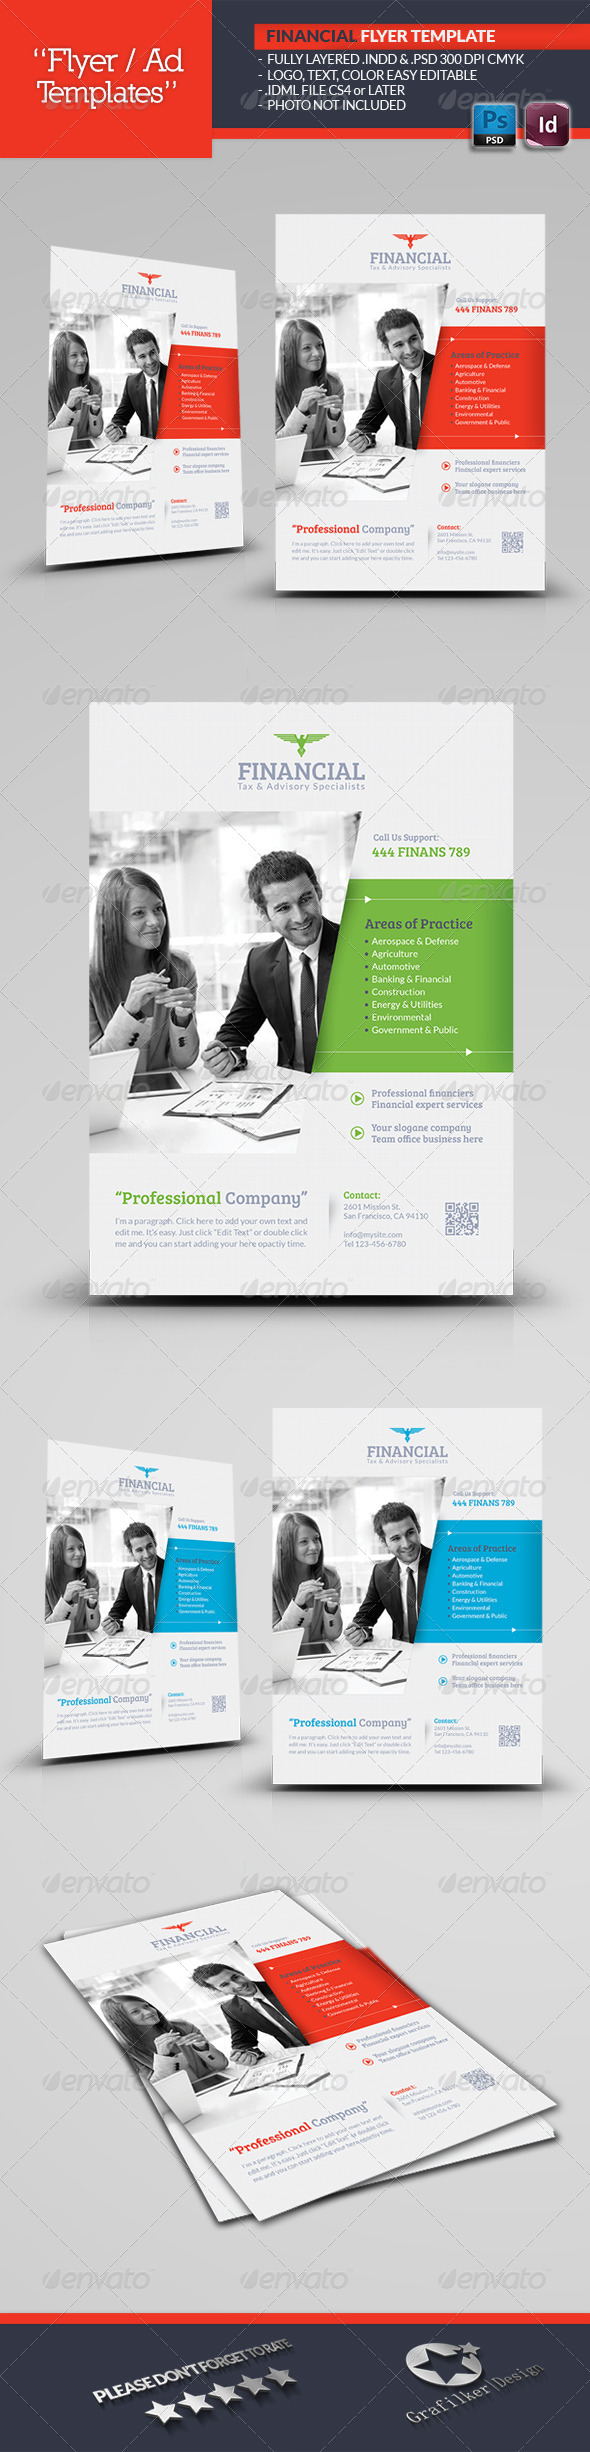 GraphicRiver Financial Flyer Template 5424464